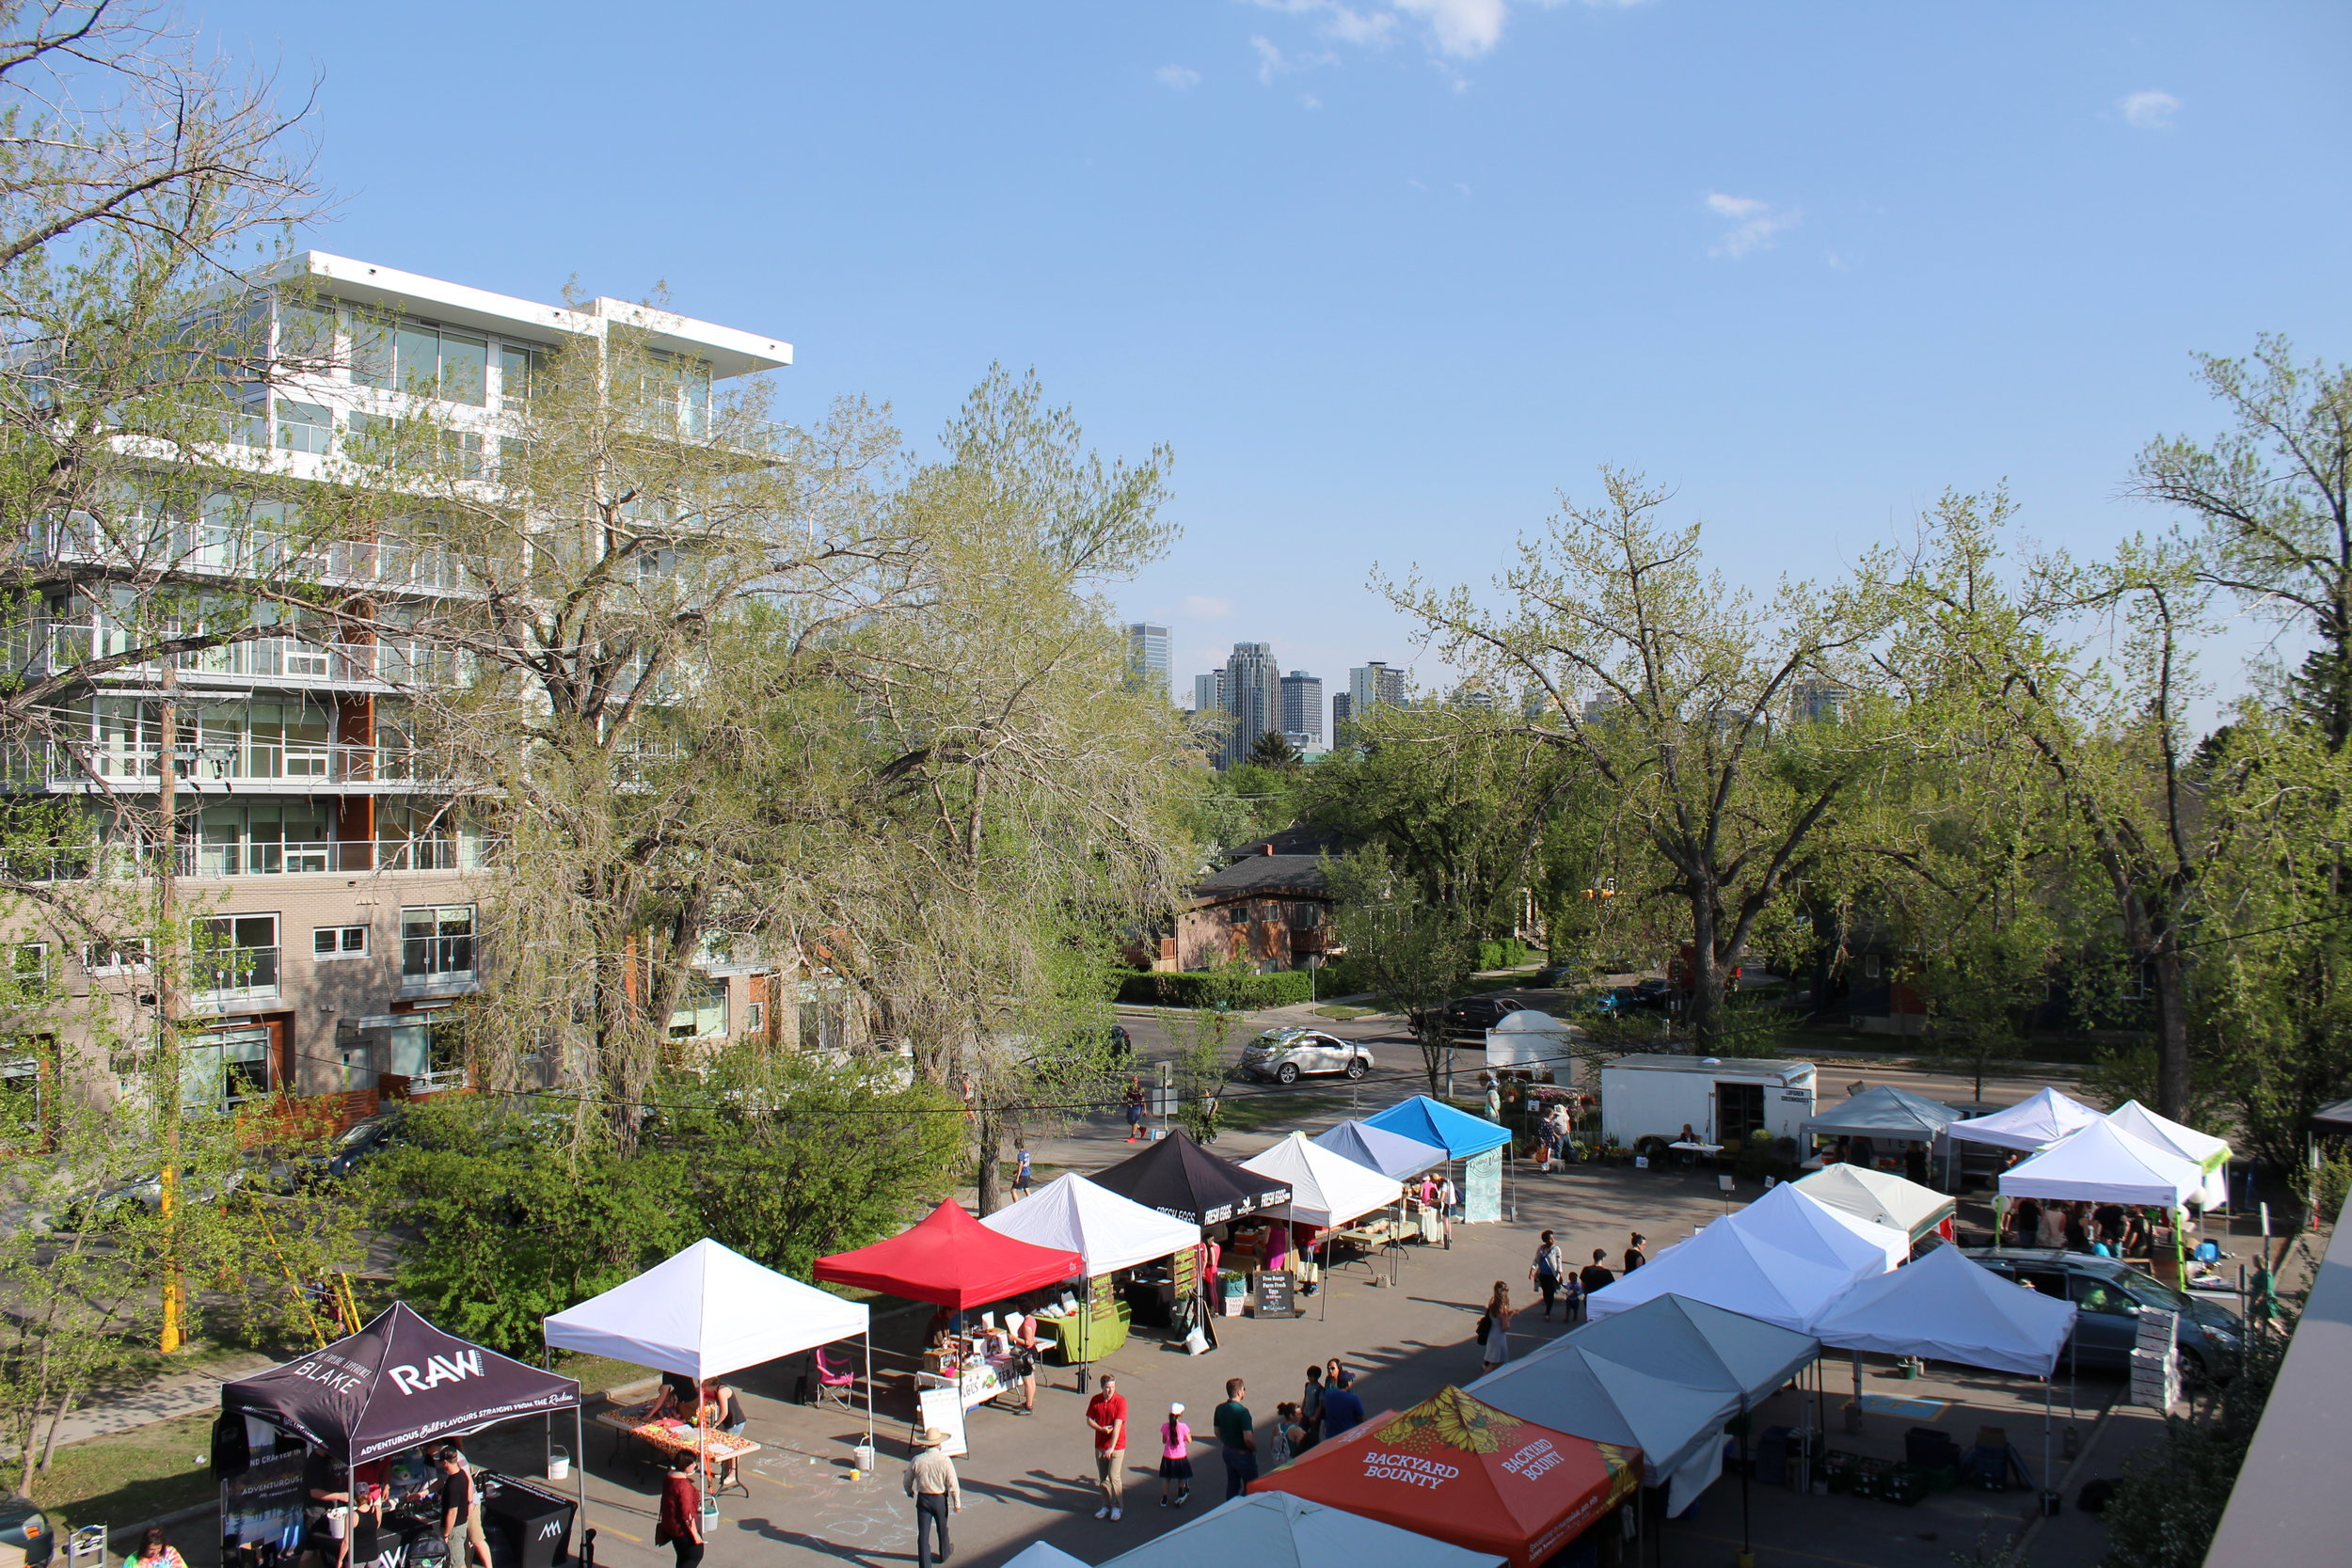 May 15th will be our first Outdoor Market of the season! See you in the East parking lot 3-7pm.